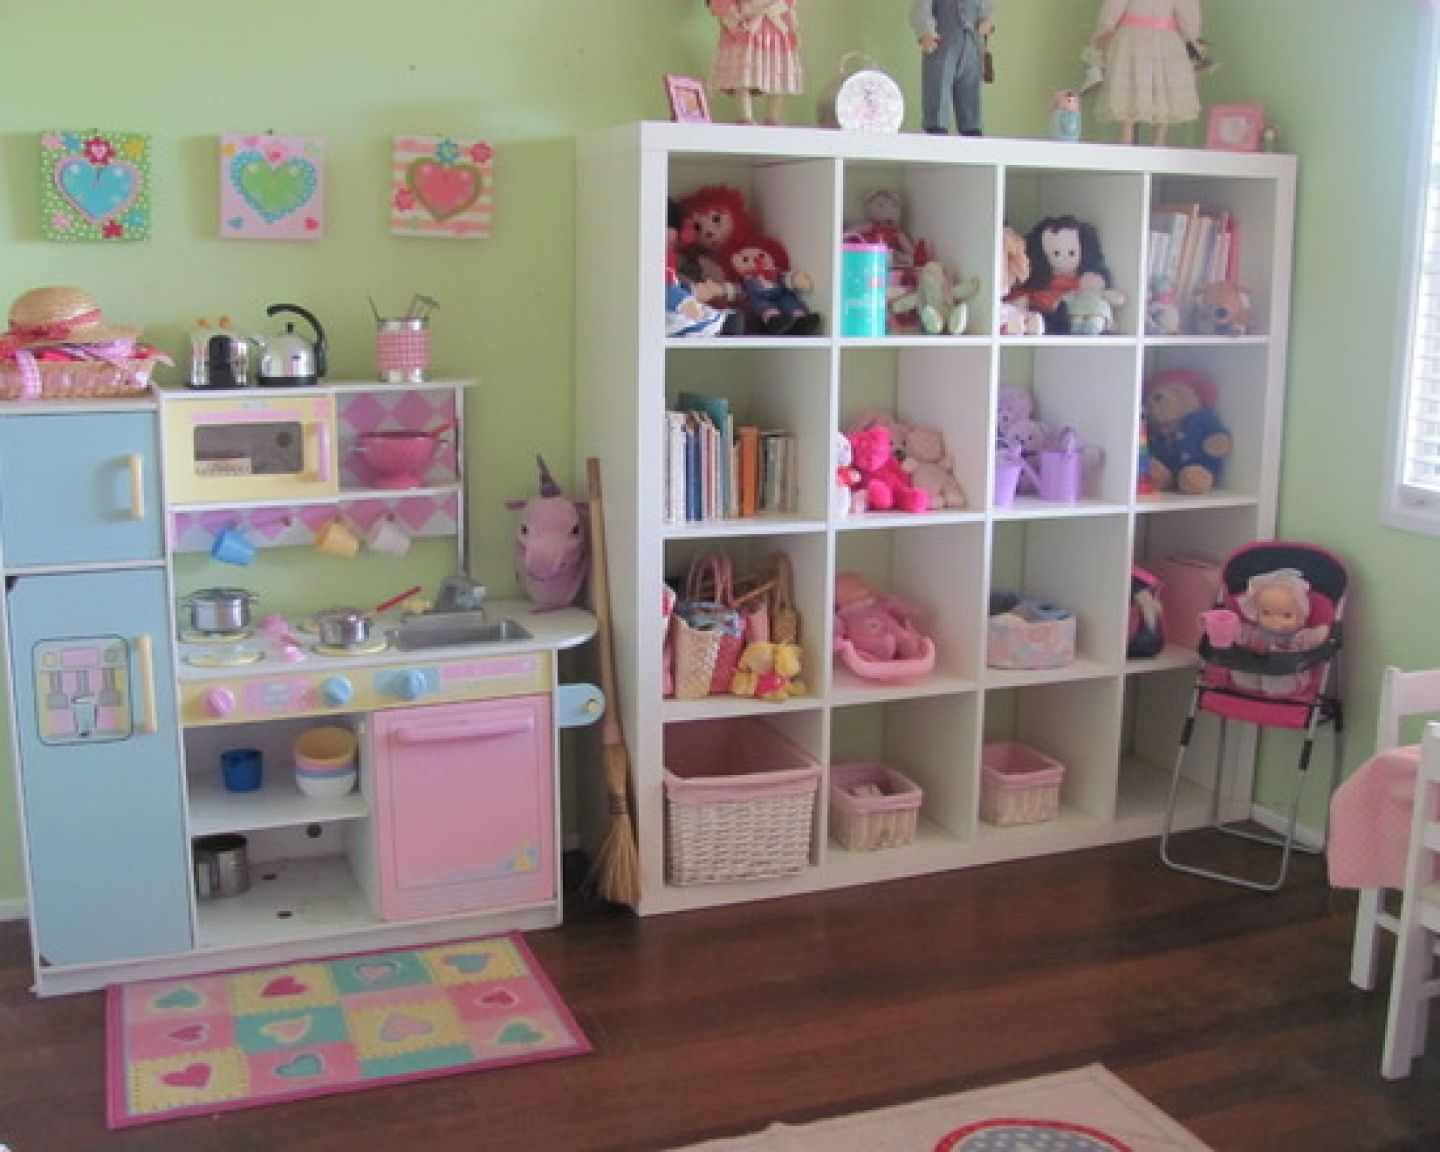 13 minimalist playroom ideas for girls stylish on playroom decorating ideas design pictures remodel decor and - Playroom Design Ideas